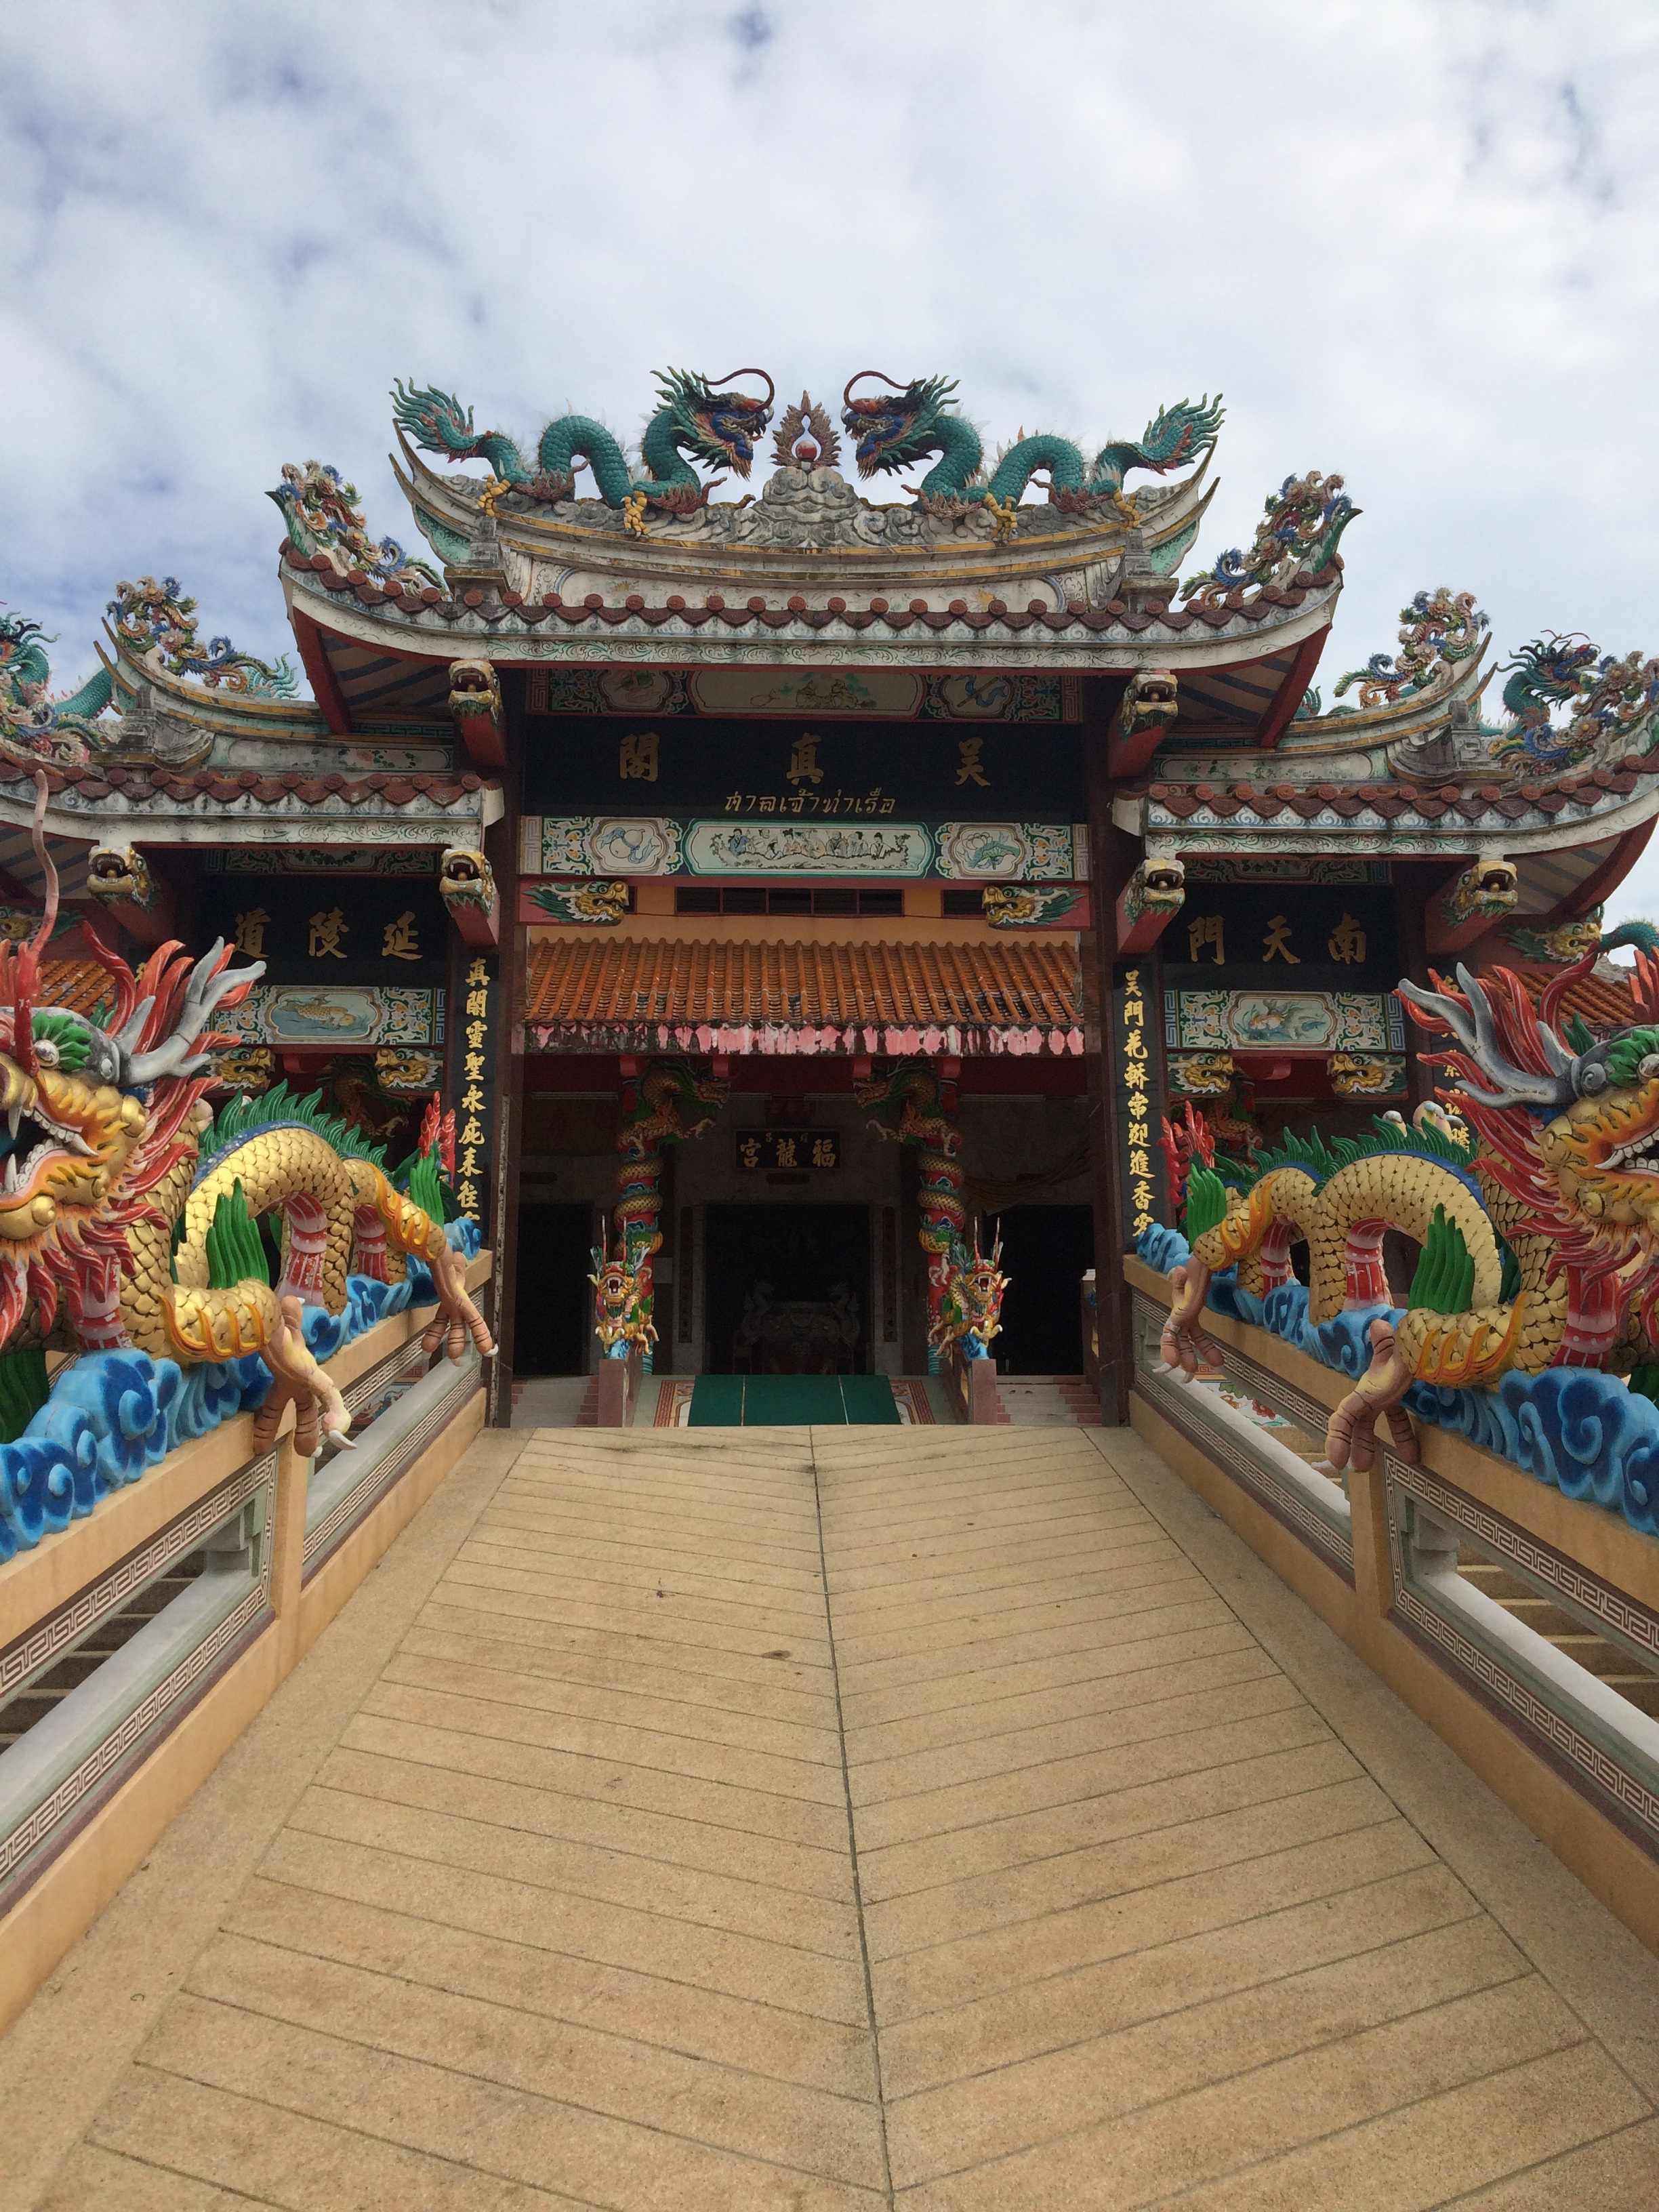 After visiting the Thai temple we went to this Chinese temple. So many more dragons!